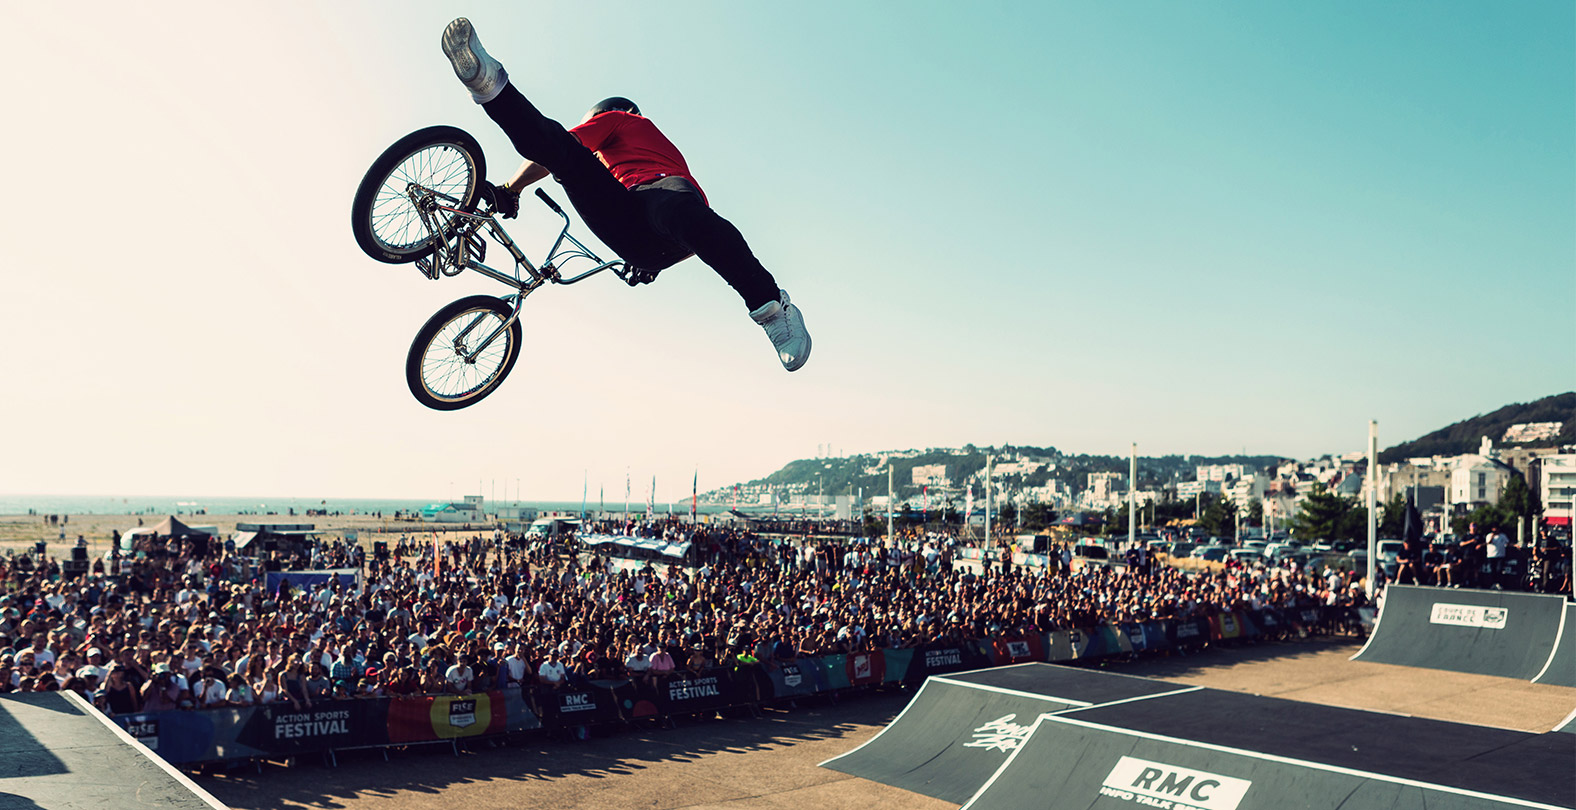 Anthony Jeanjean at Fise Wolrd Montpellier 2019